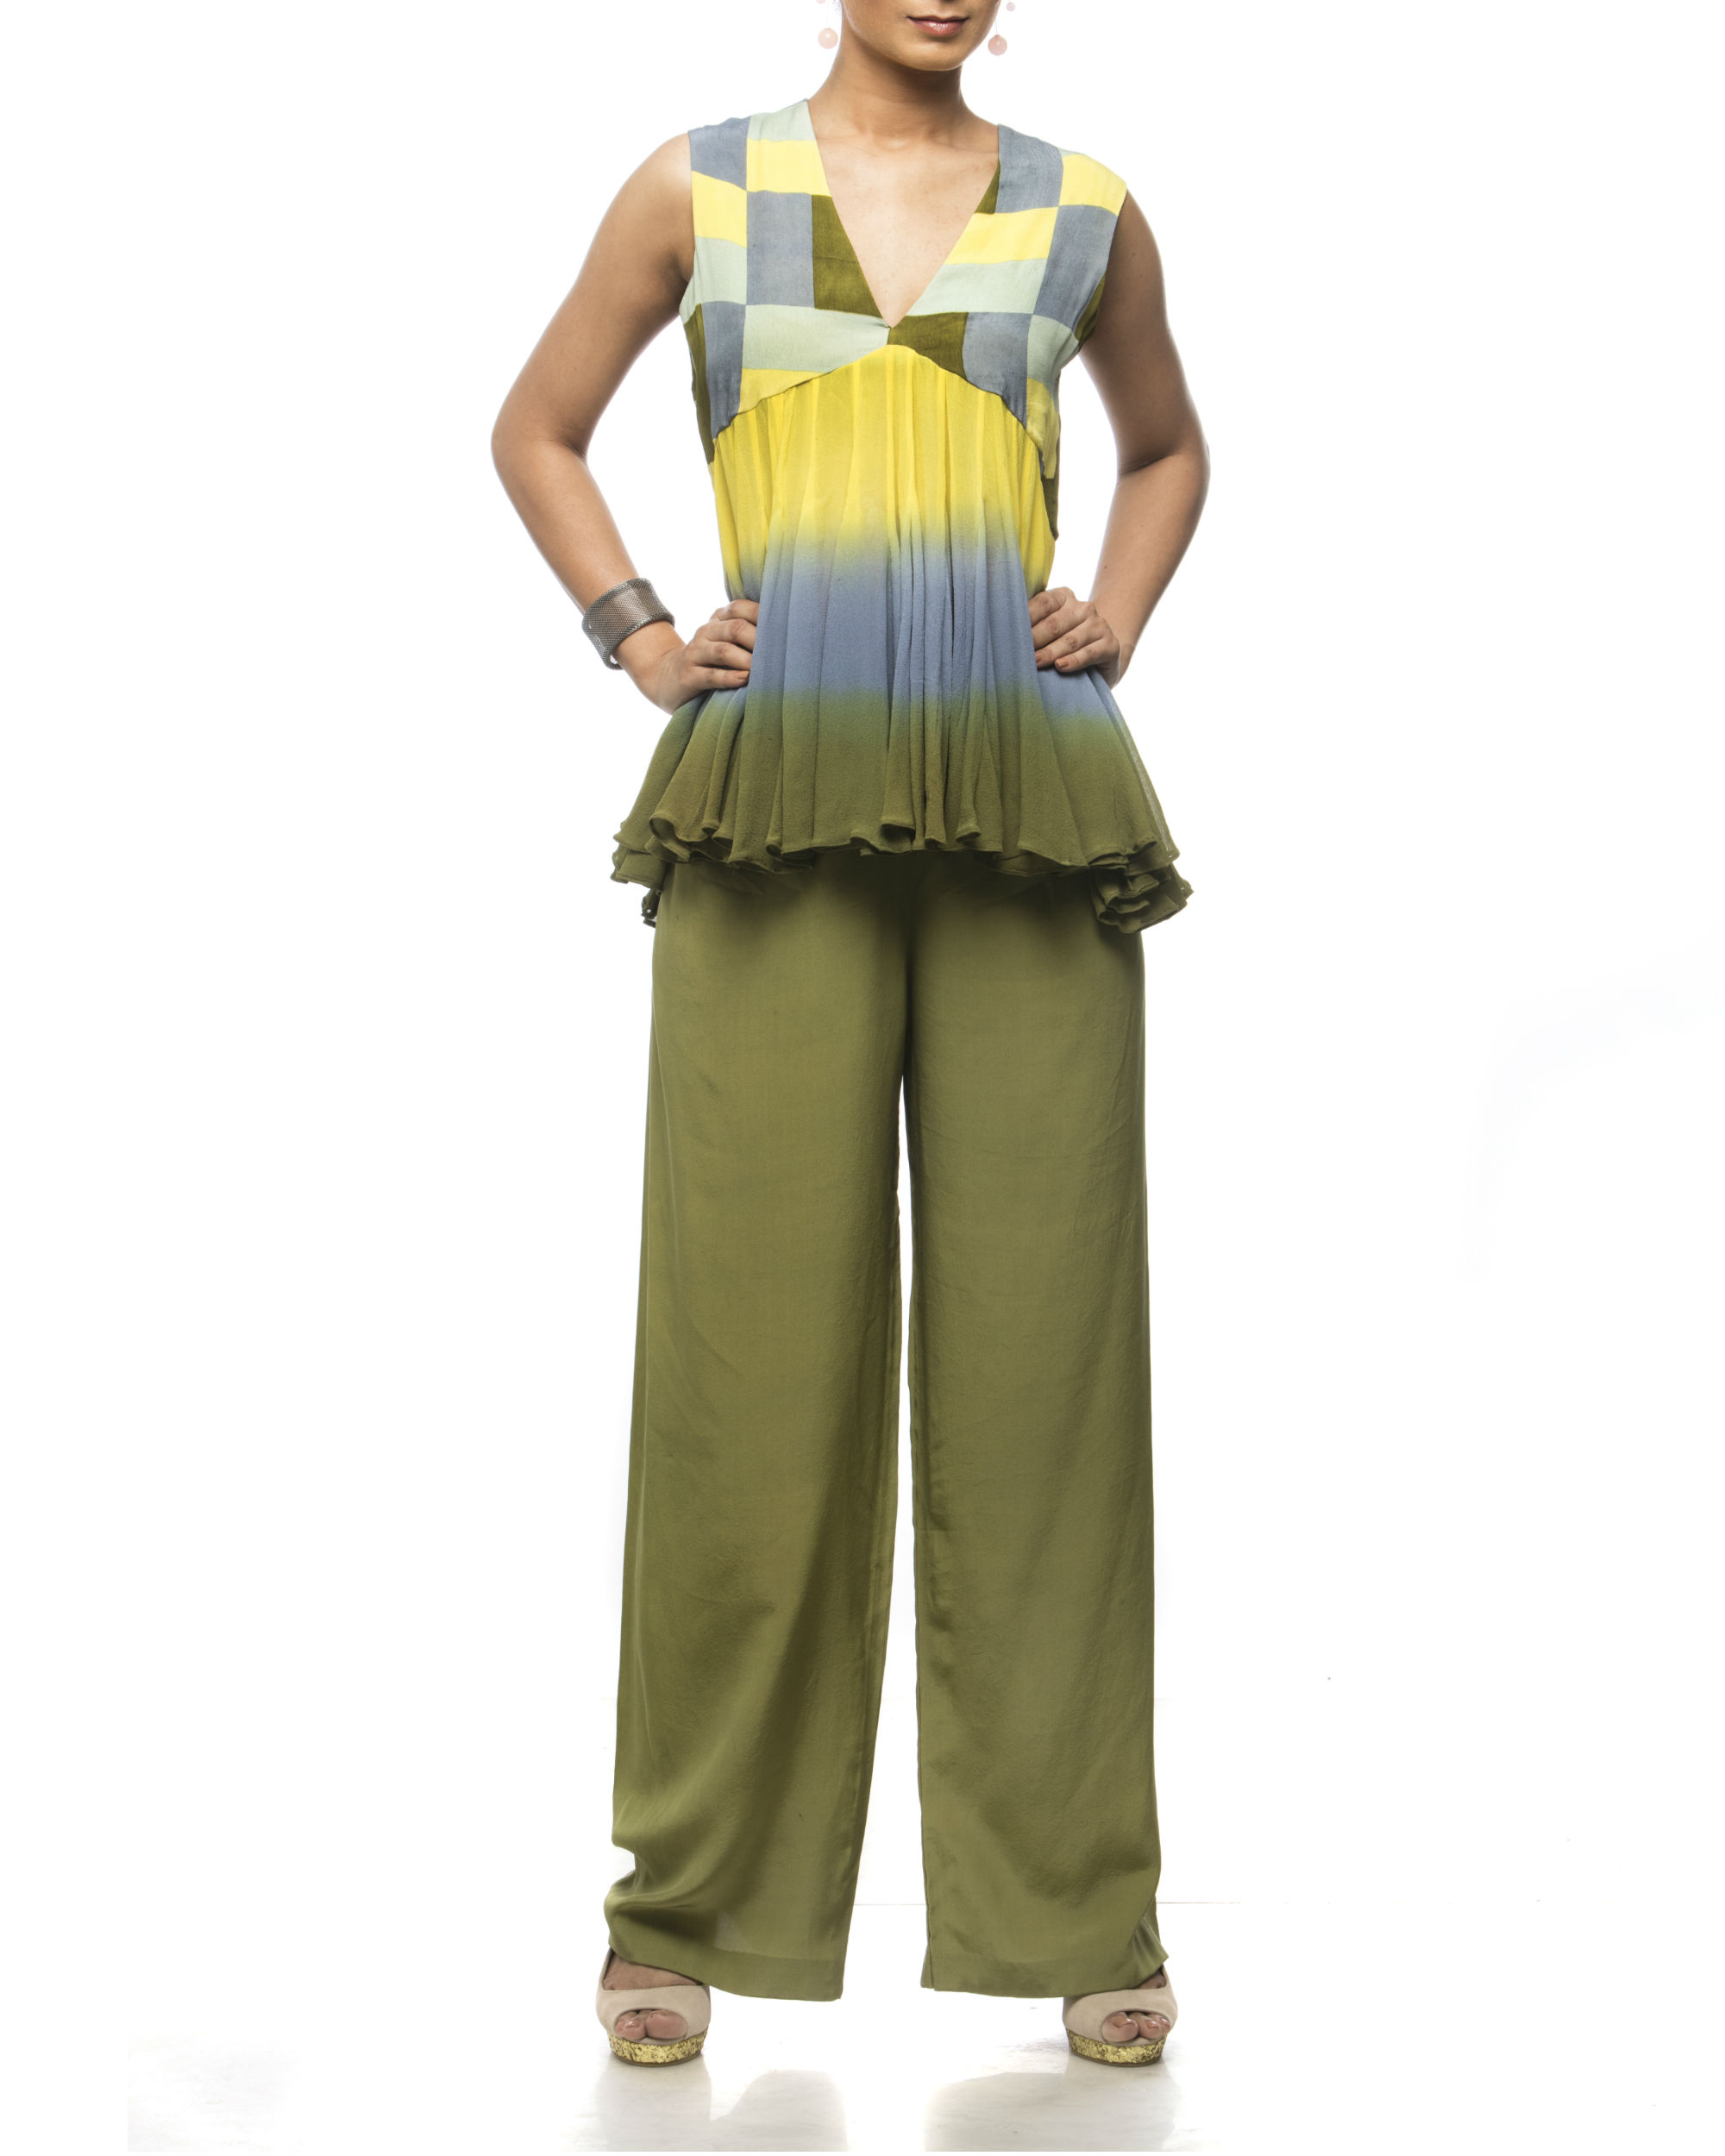 Olive Palazzo Pants By Debarun The Secret Label